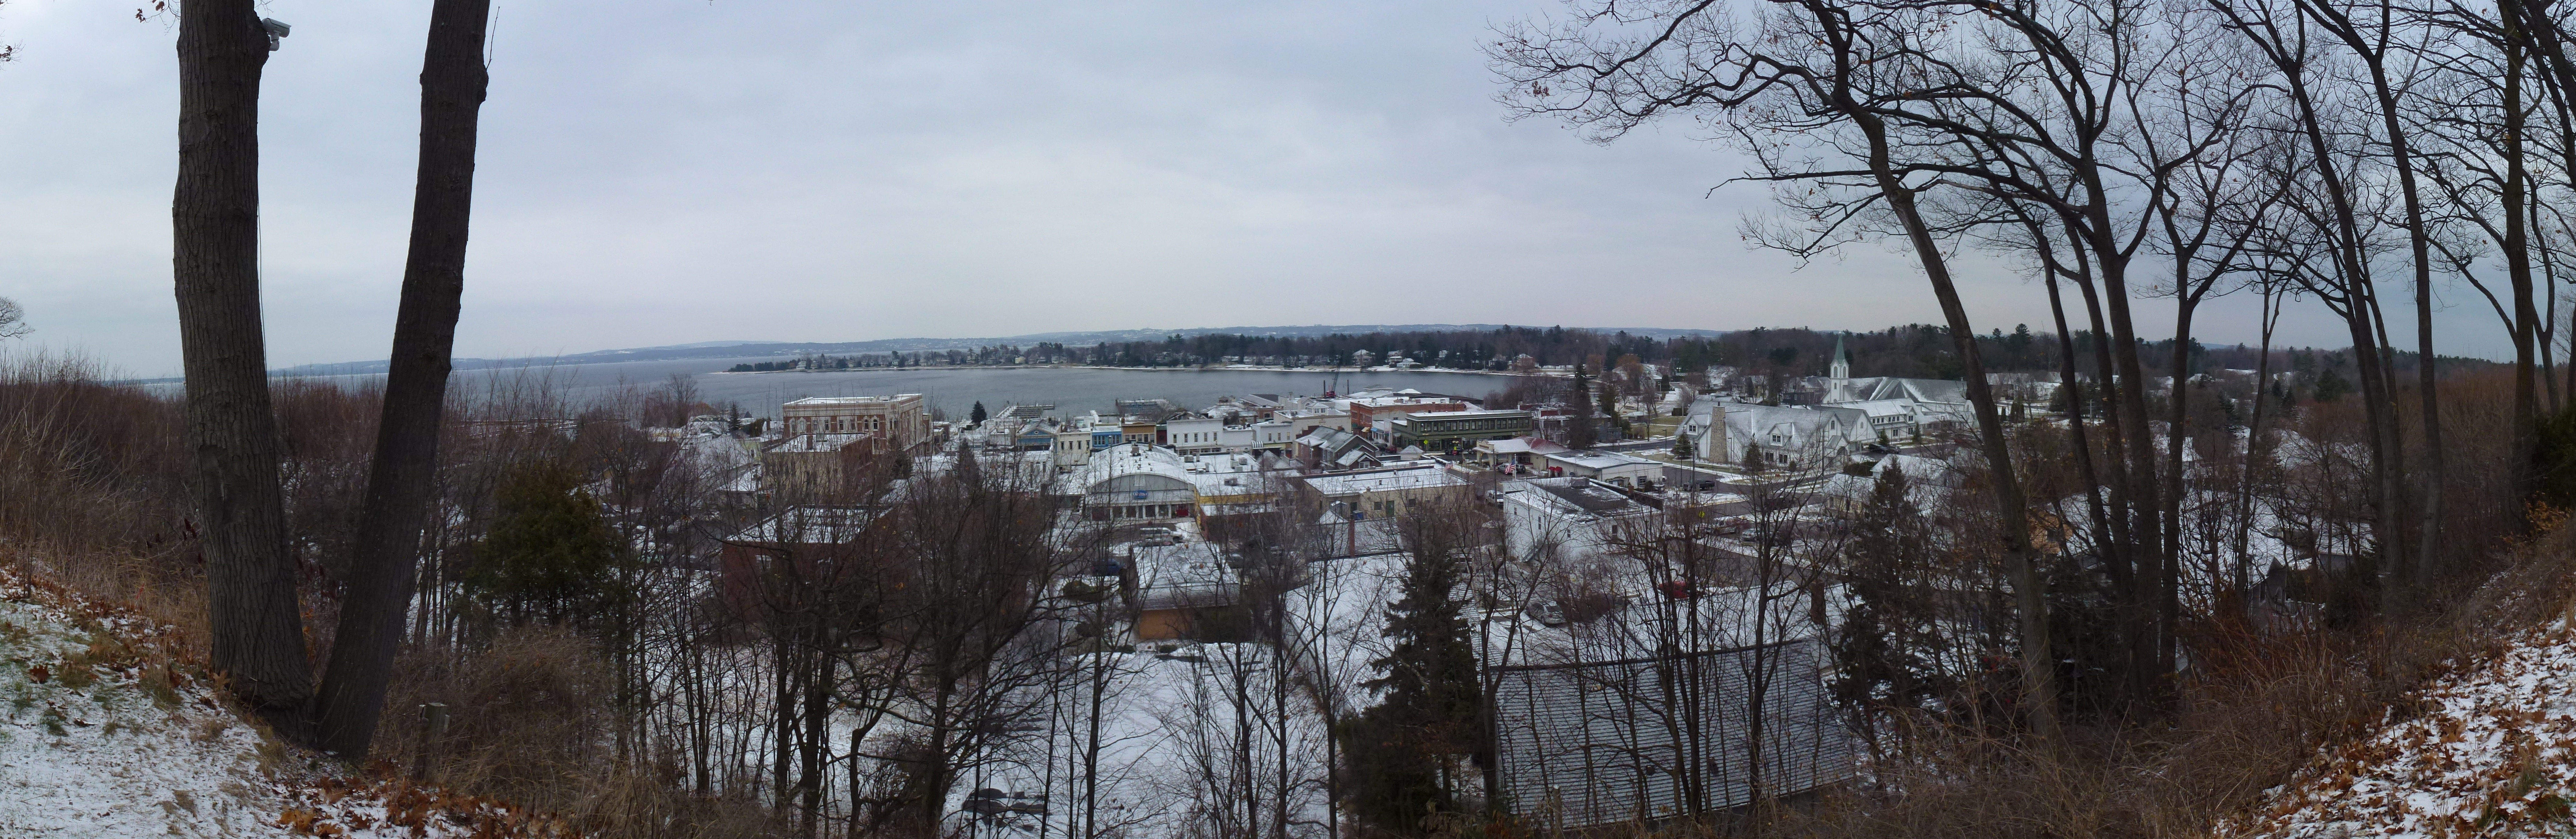 File Harbor Springs Michigan View From Bluff In Winter Jpg Wikipedia